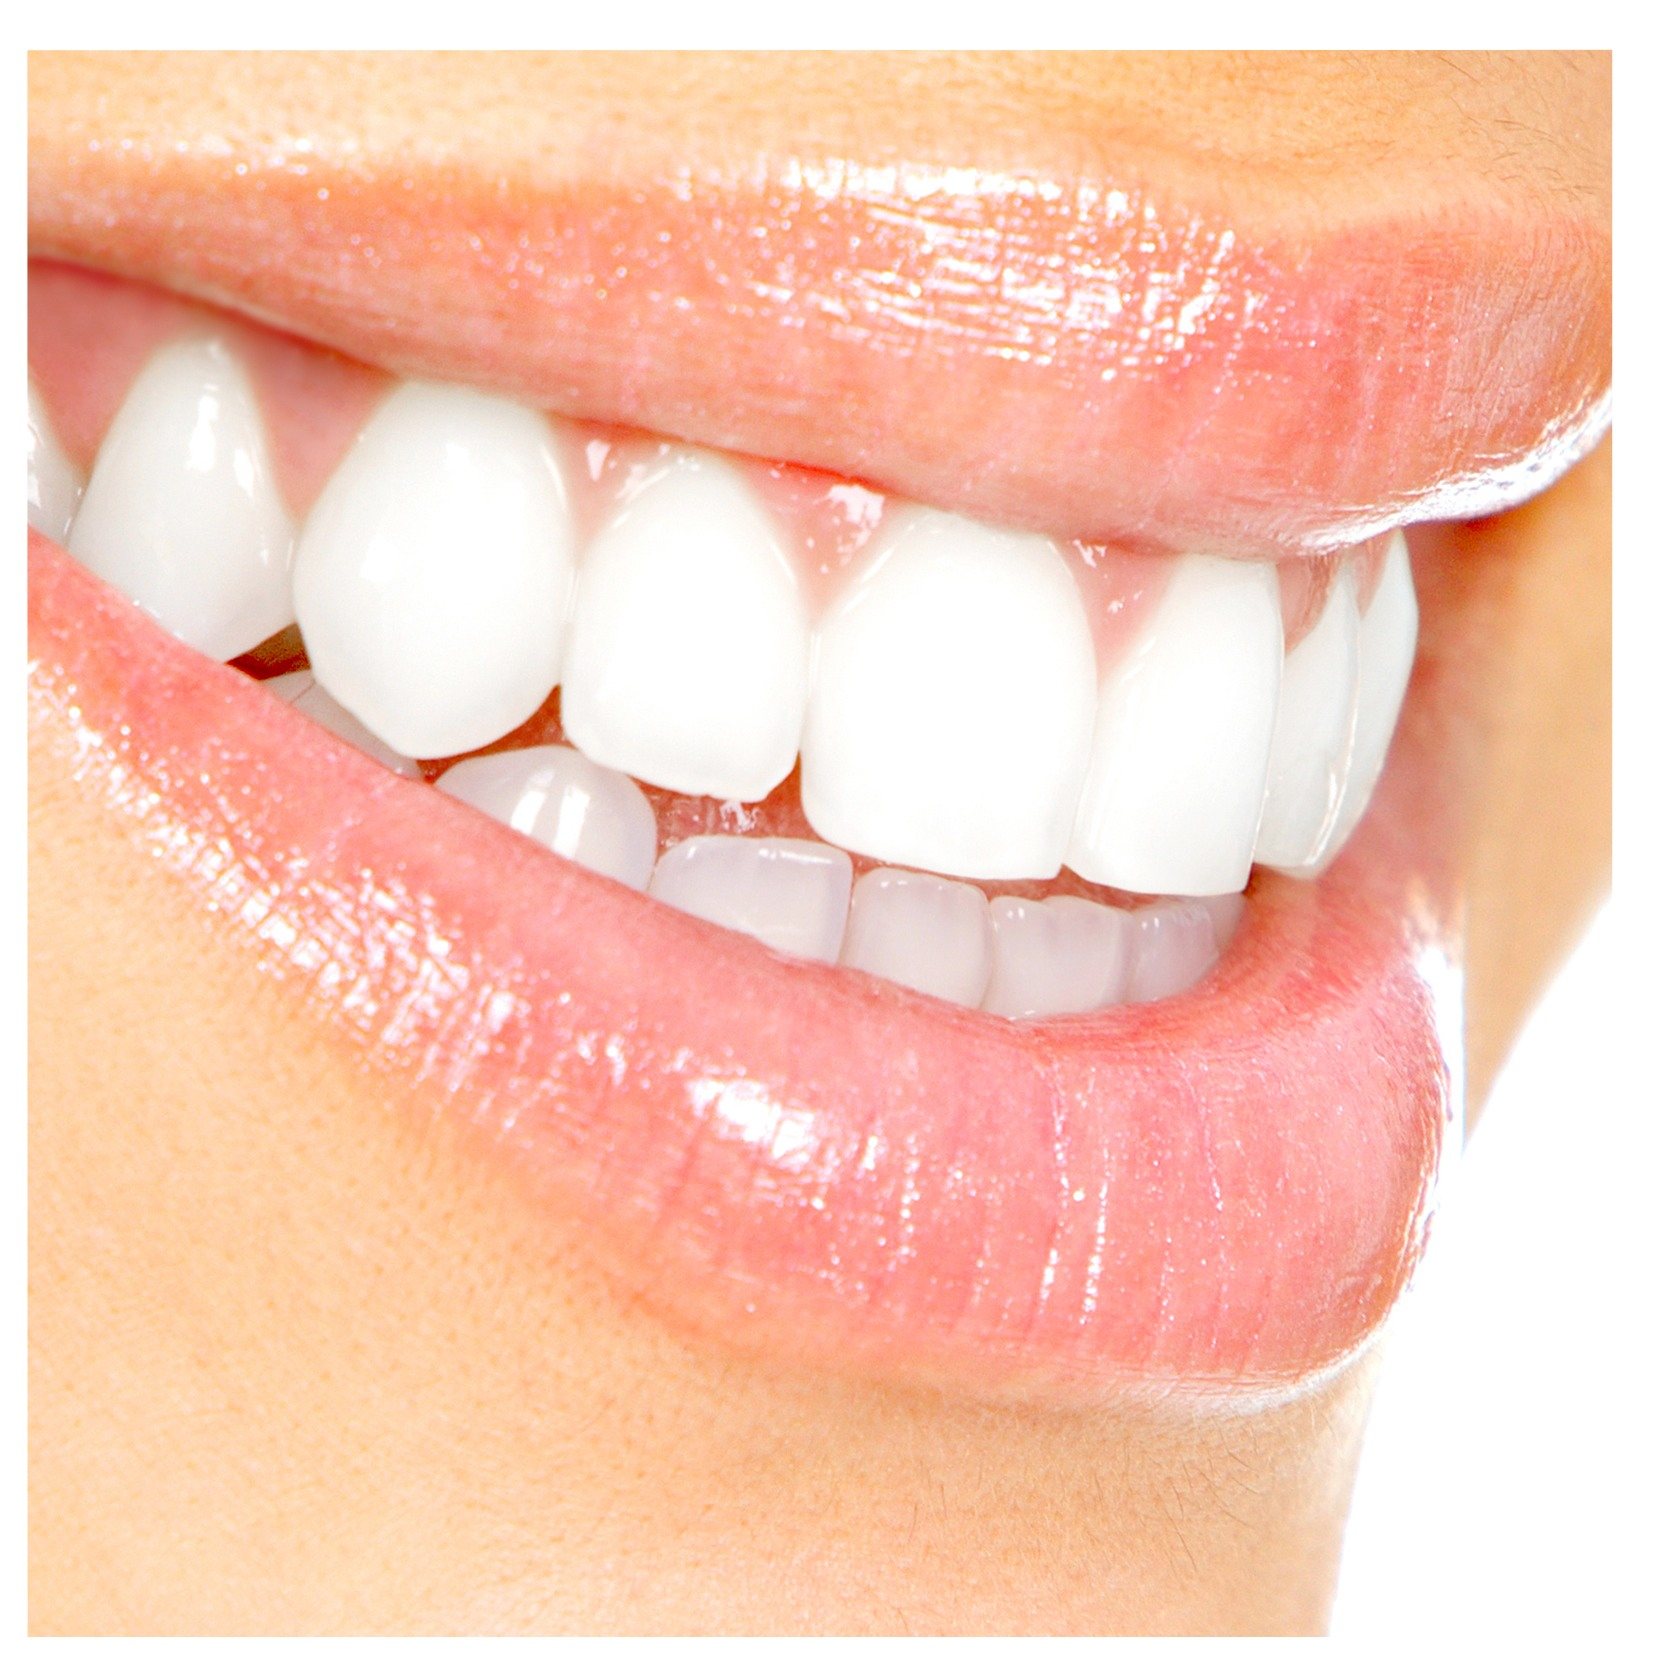 WHAT IS A PORCELAIN VENEER?